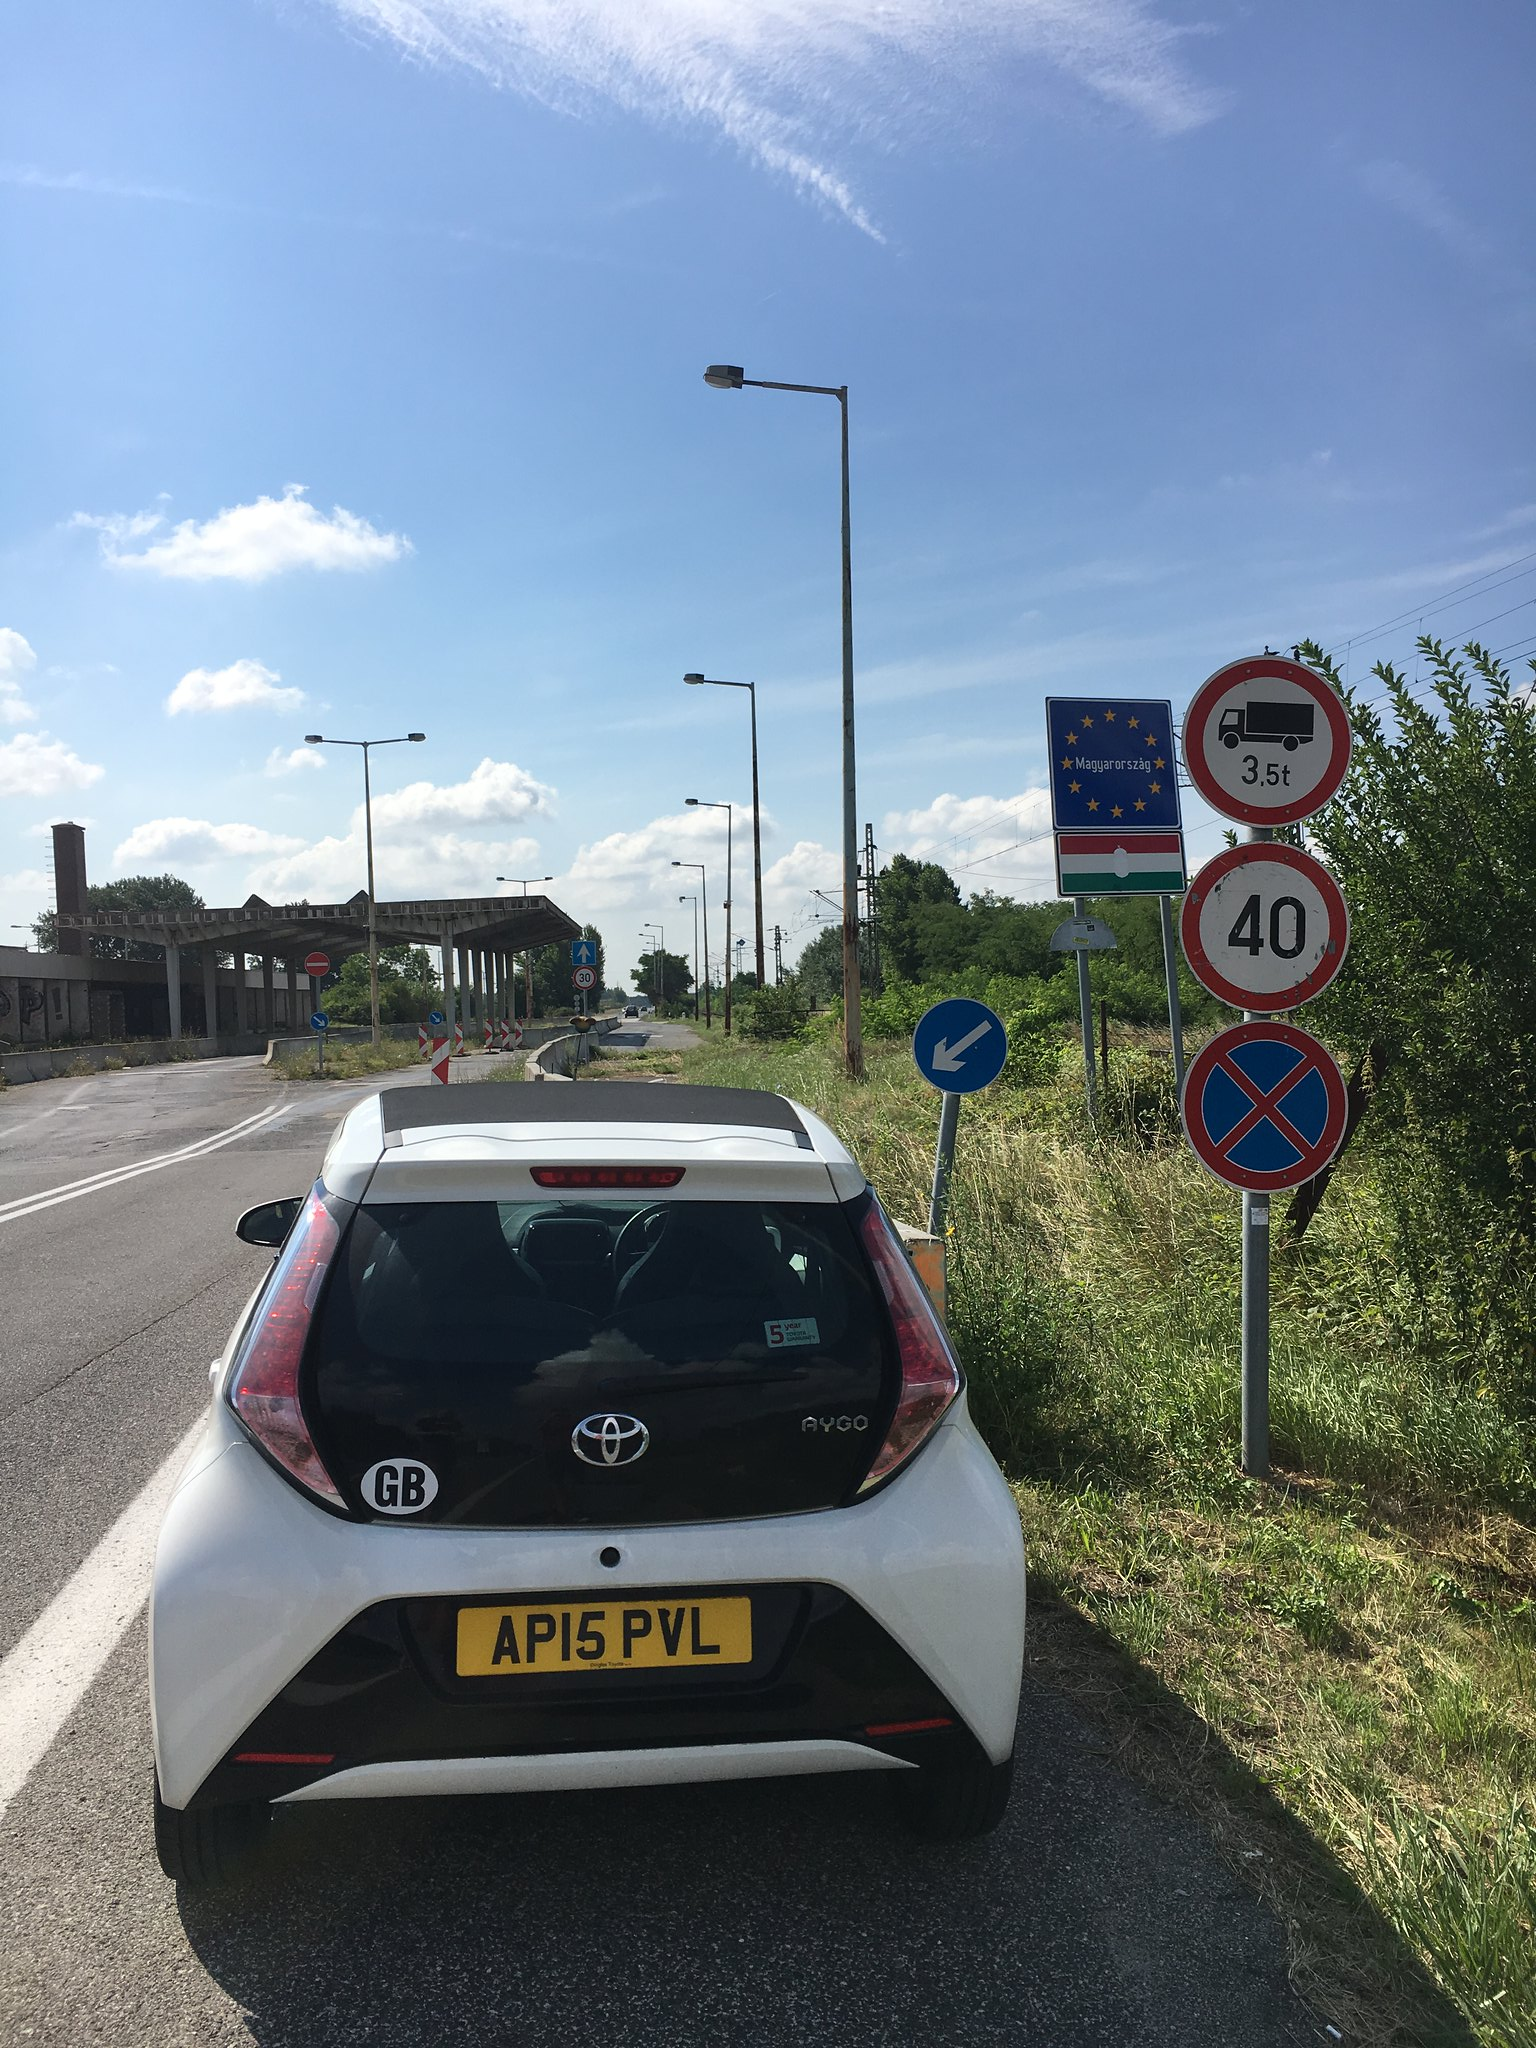 1 toyota aygo 13 countries 18 days 4500 miles page 1 we stopped at a point at which three countries meet on the way into hungary and took some pictures at the old border crossing on the road running parallel sciox Images